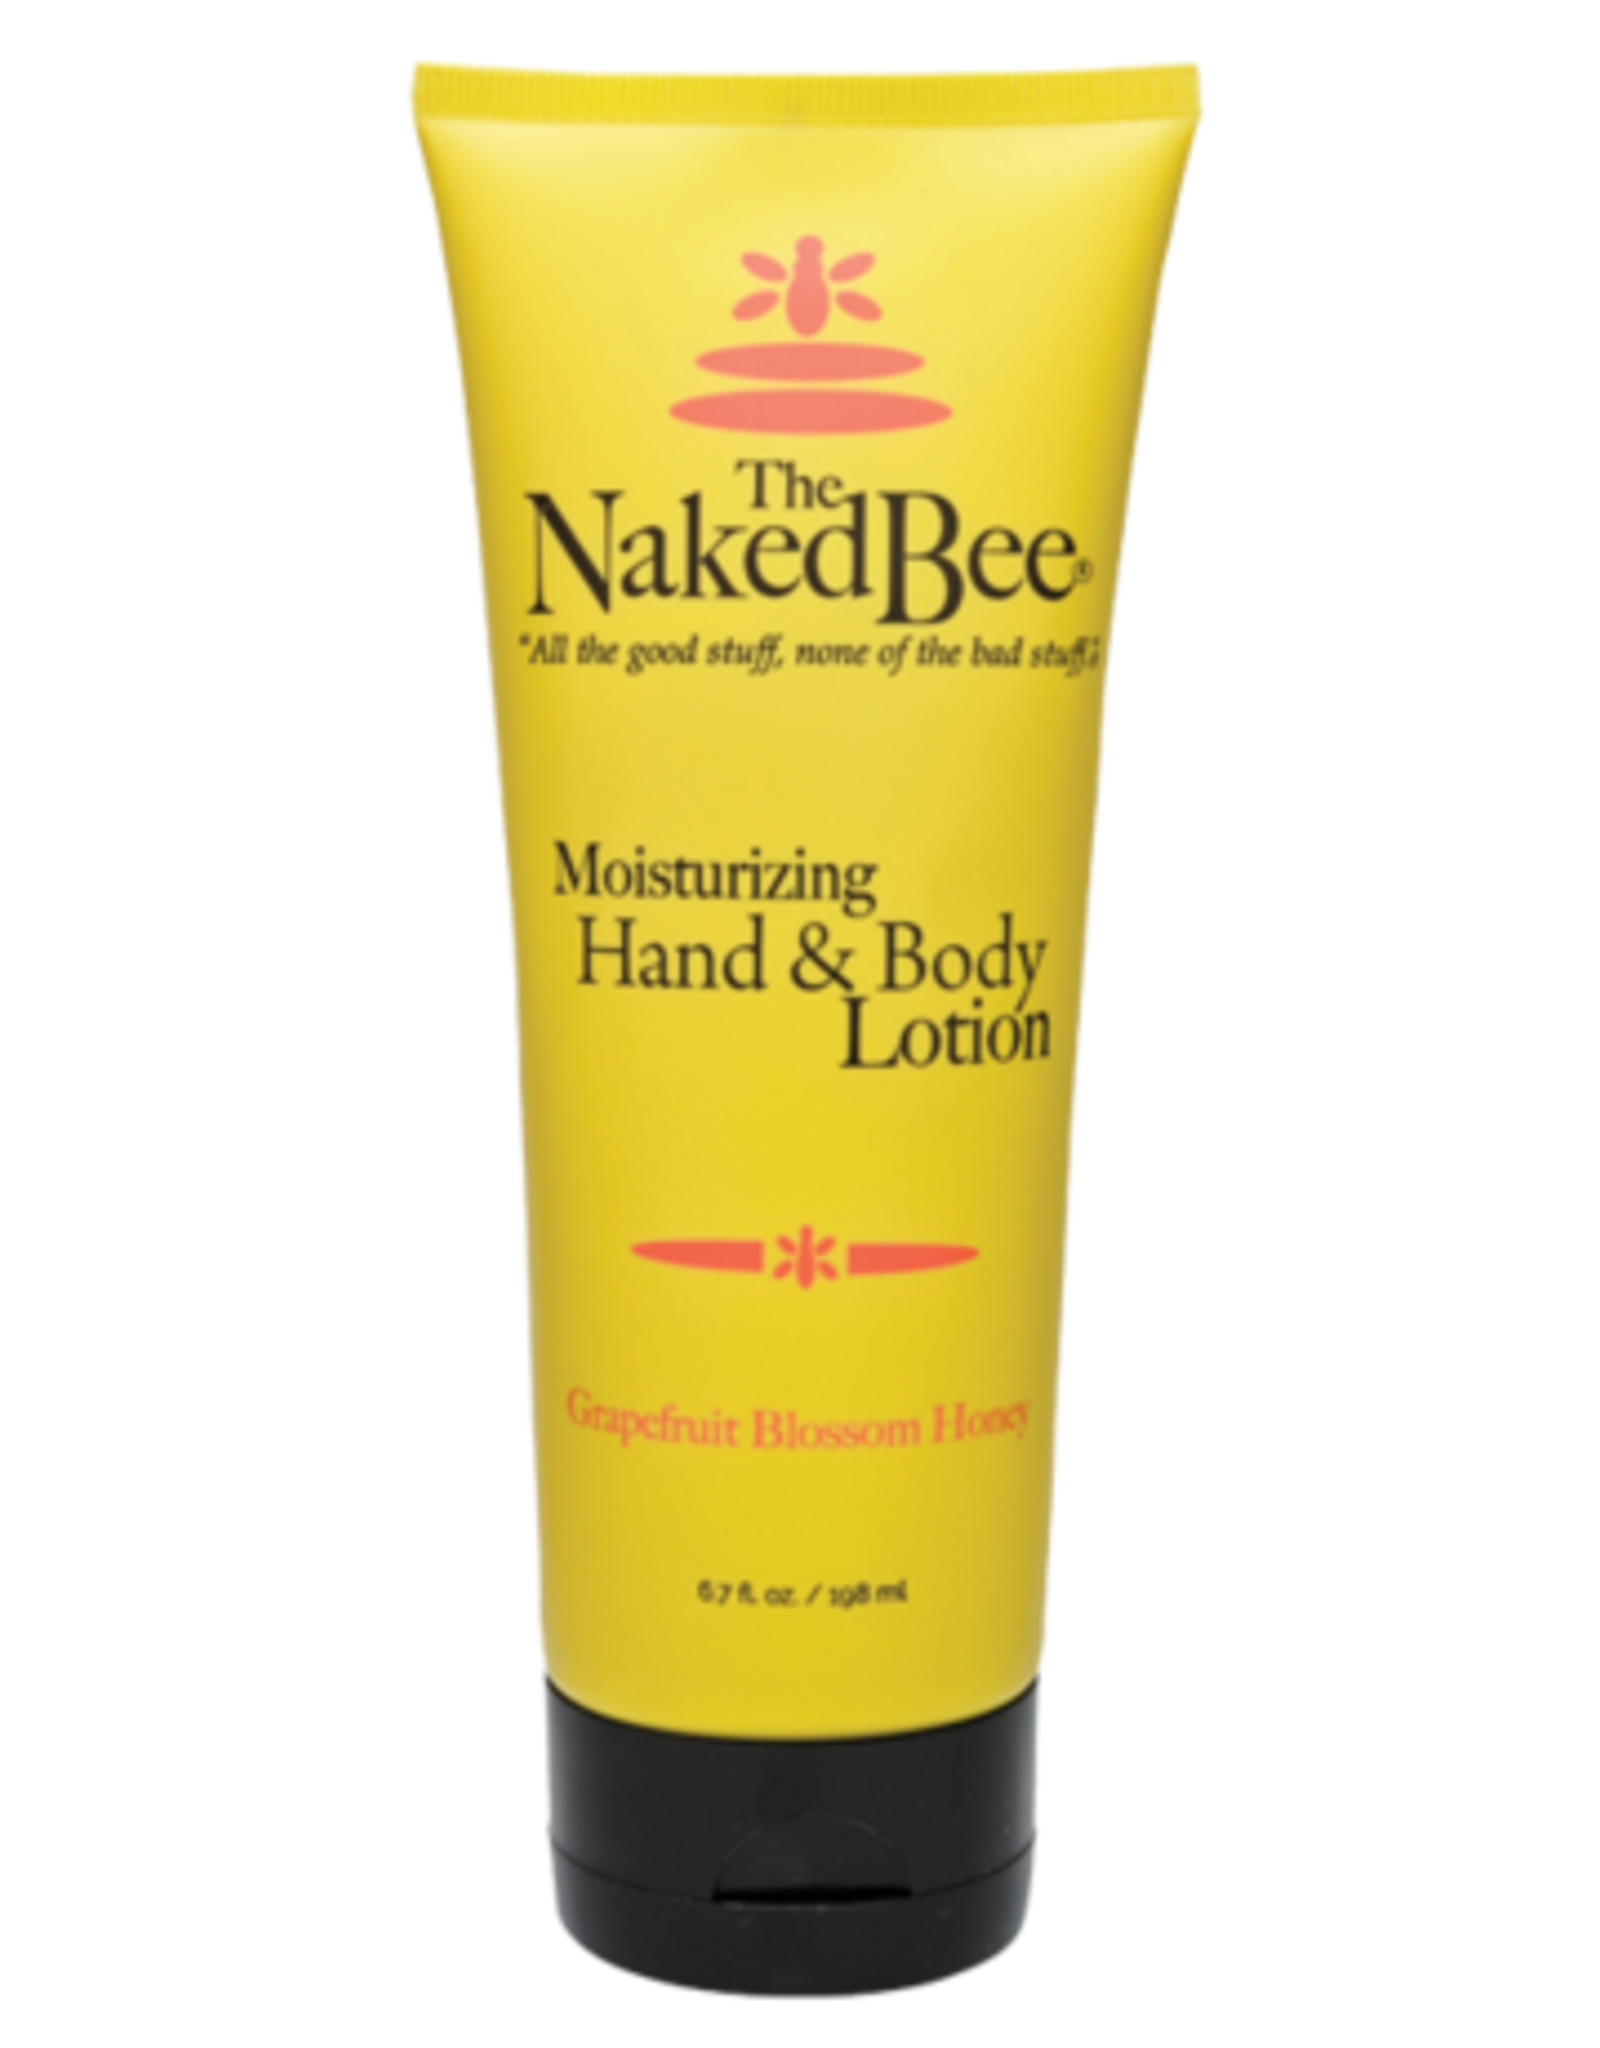 The Naked Bee - Lavender & Beeswax Hand & Body Lotion 6.7